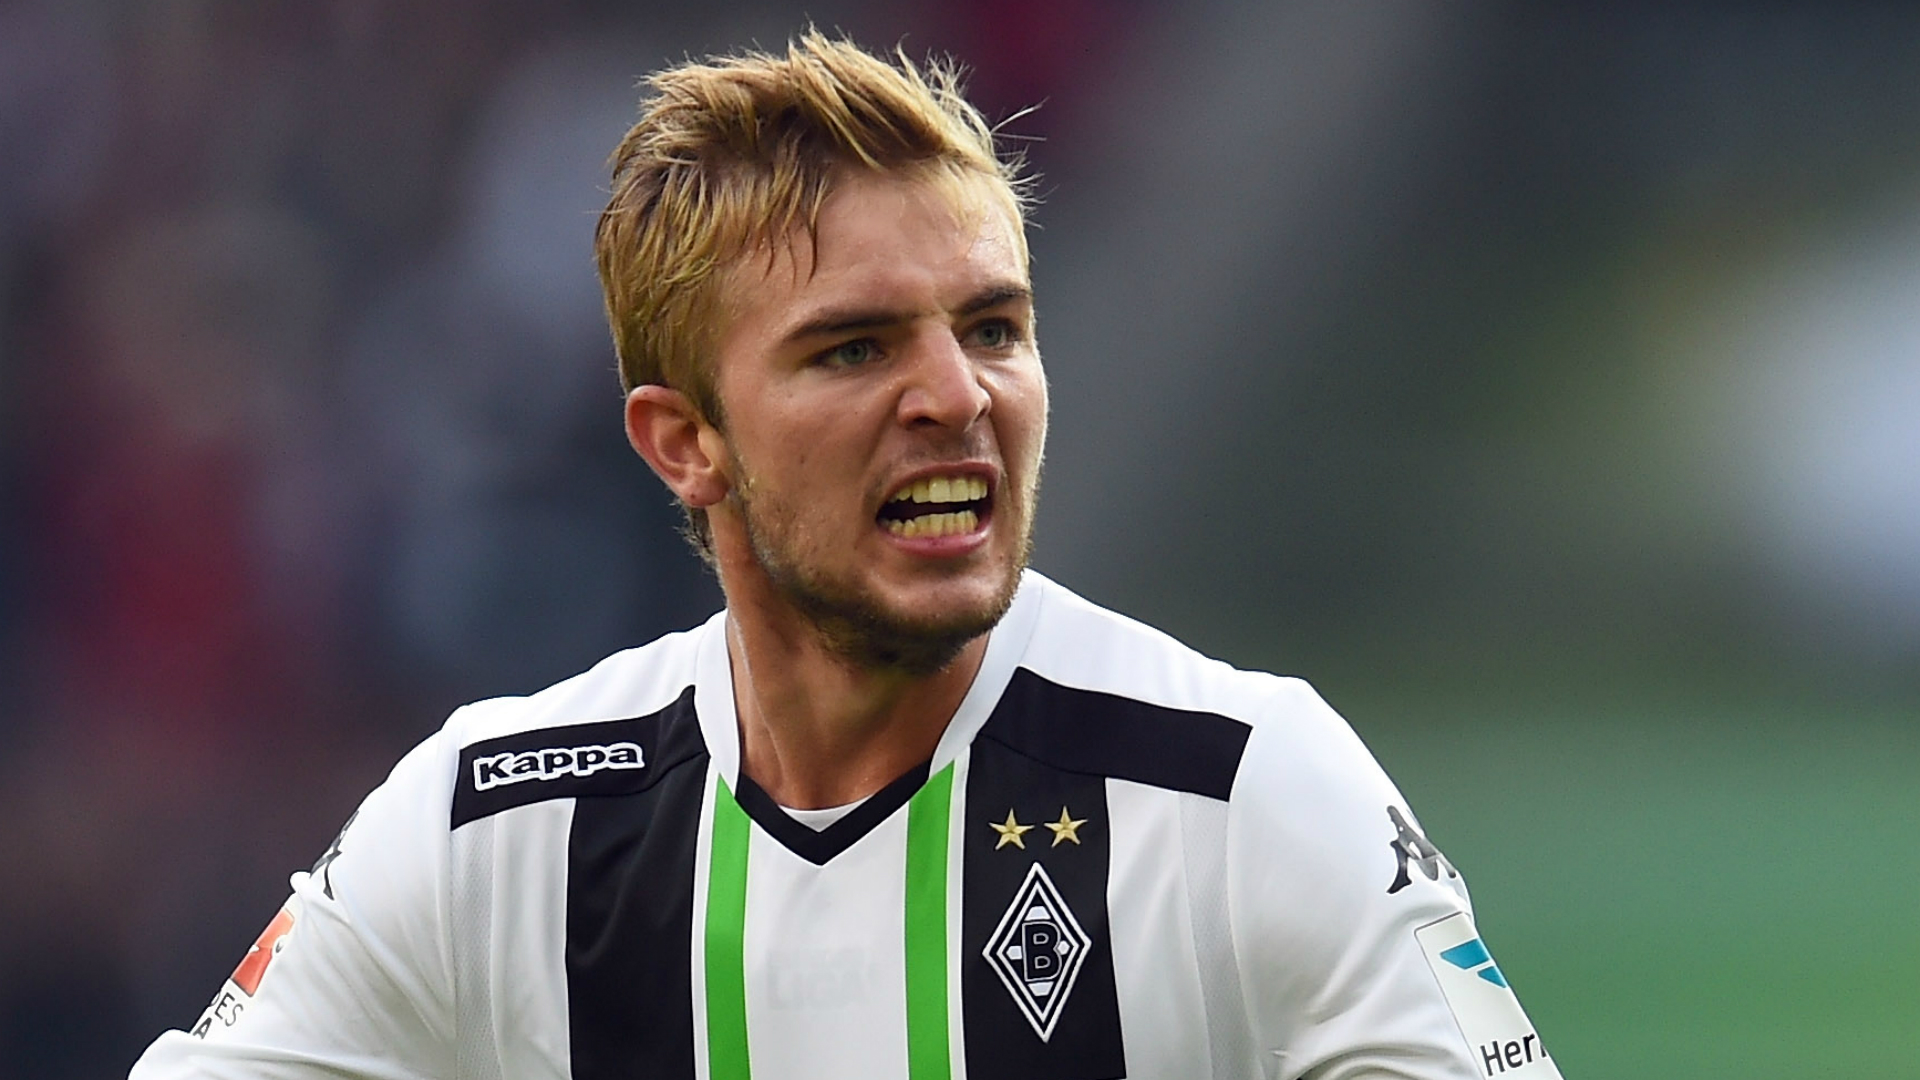 Gladbach's Kramer set for long absence after rupturing ankle ligaments